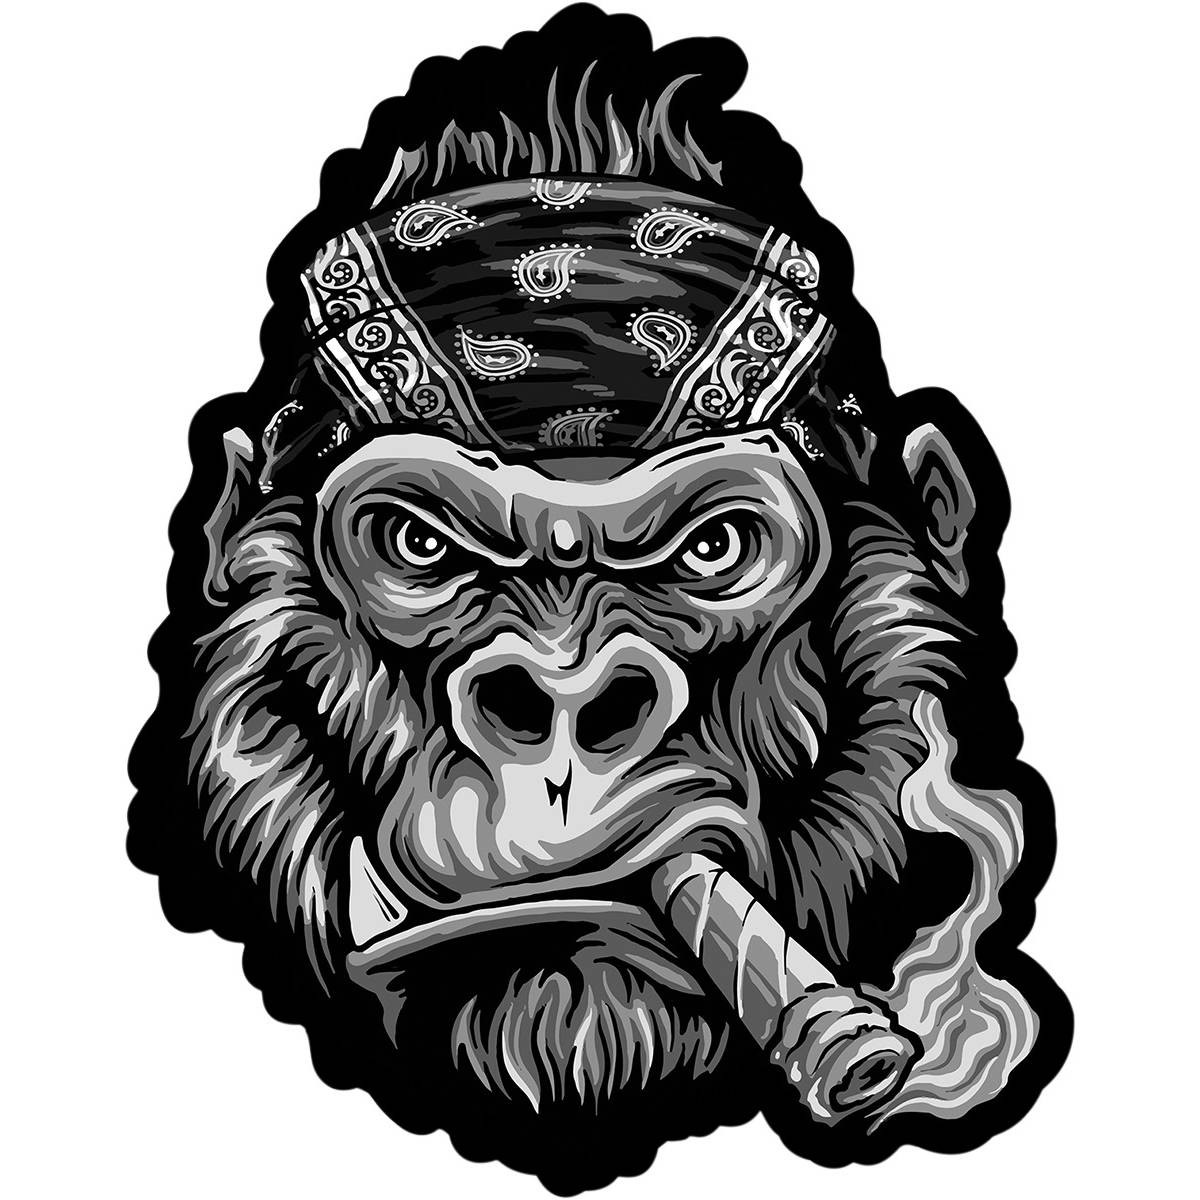 Lethal threat clipart picture black and white library Lethal Threat Band Gorilla Patch picture black and white library